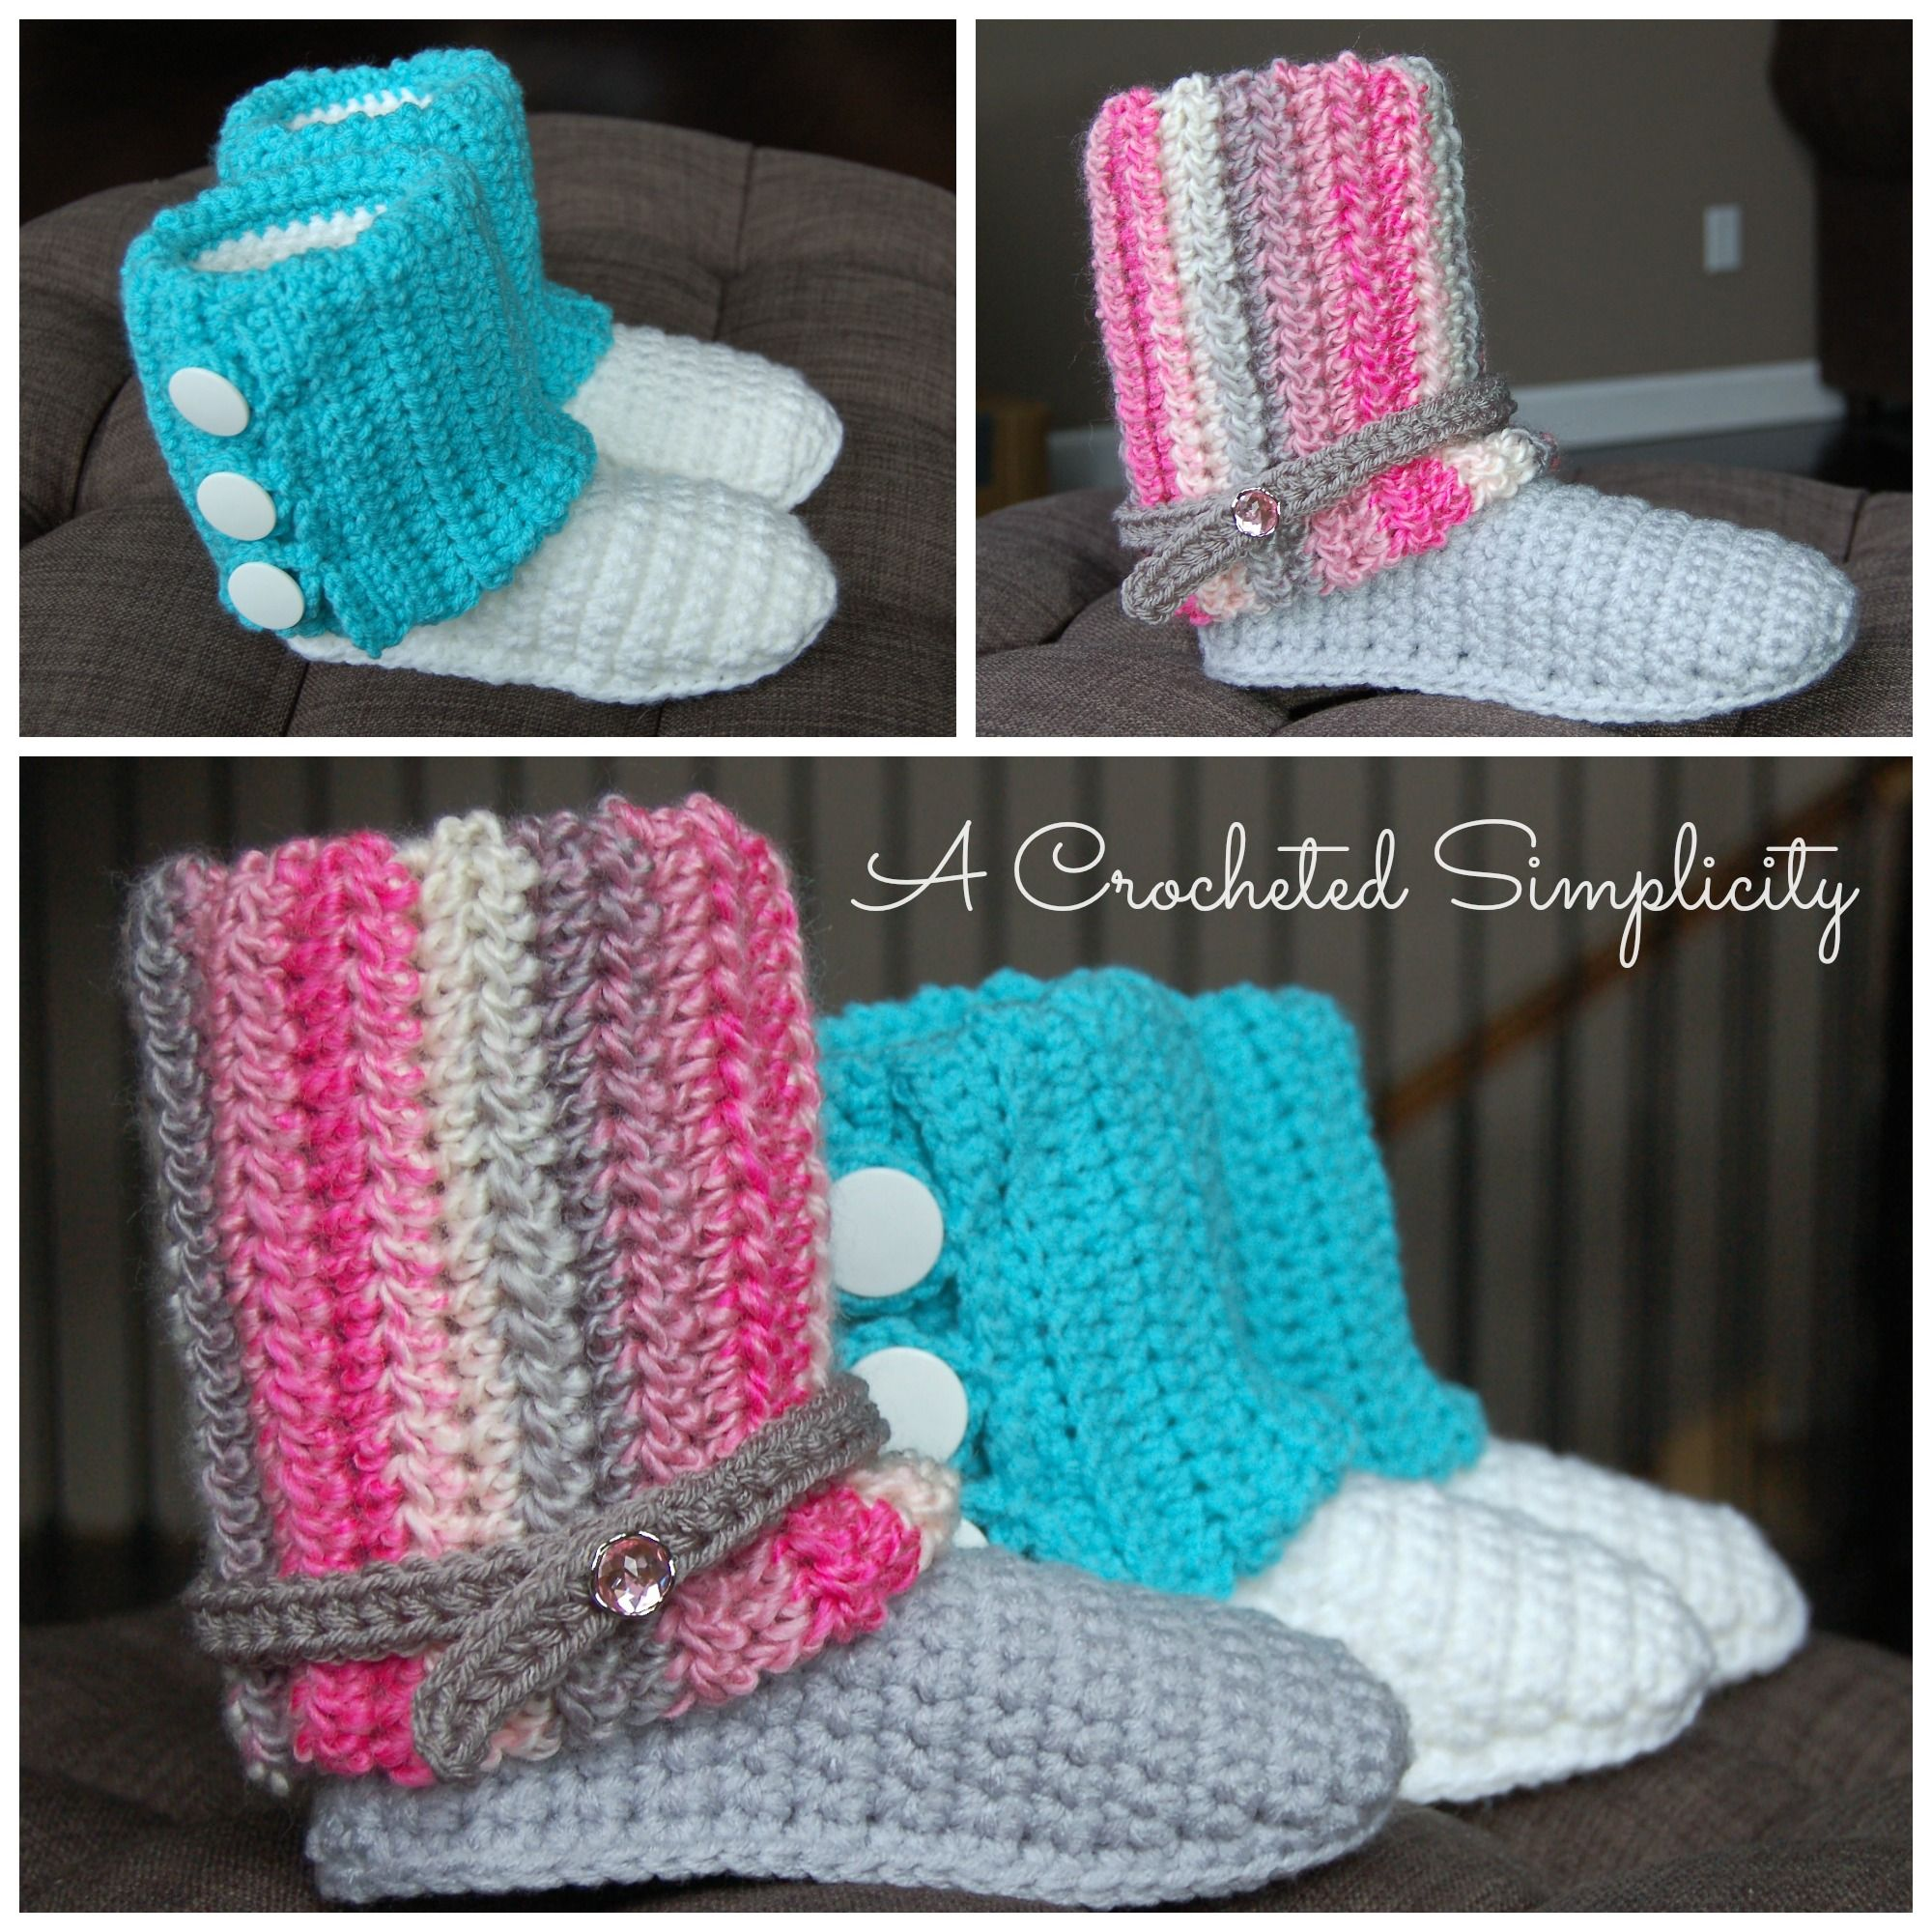 Kids slouchy slipper boots pattern by jennifer pionk slipper crochet pattern kids slouchy slipper boots by a crocheted simplicity crochet crochetslipperboots bankloansurffo Image collections